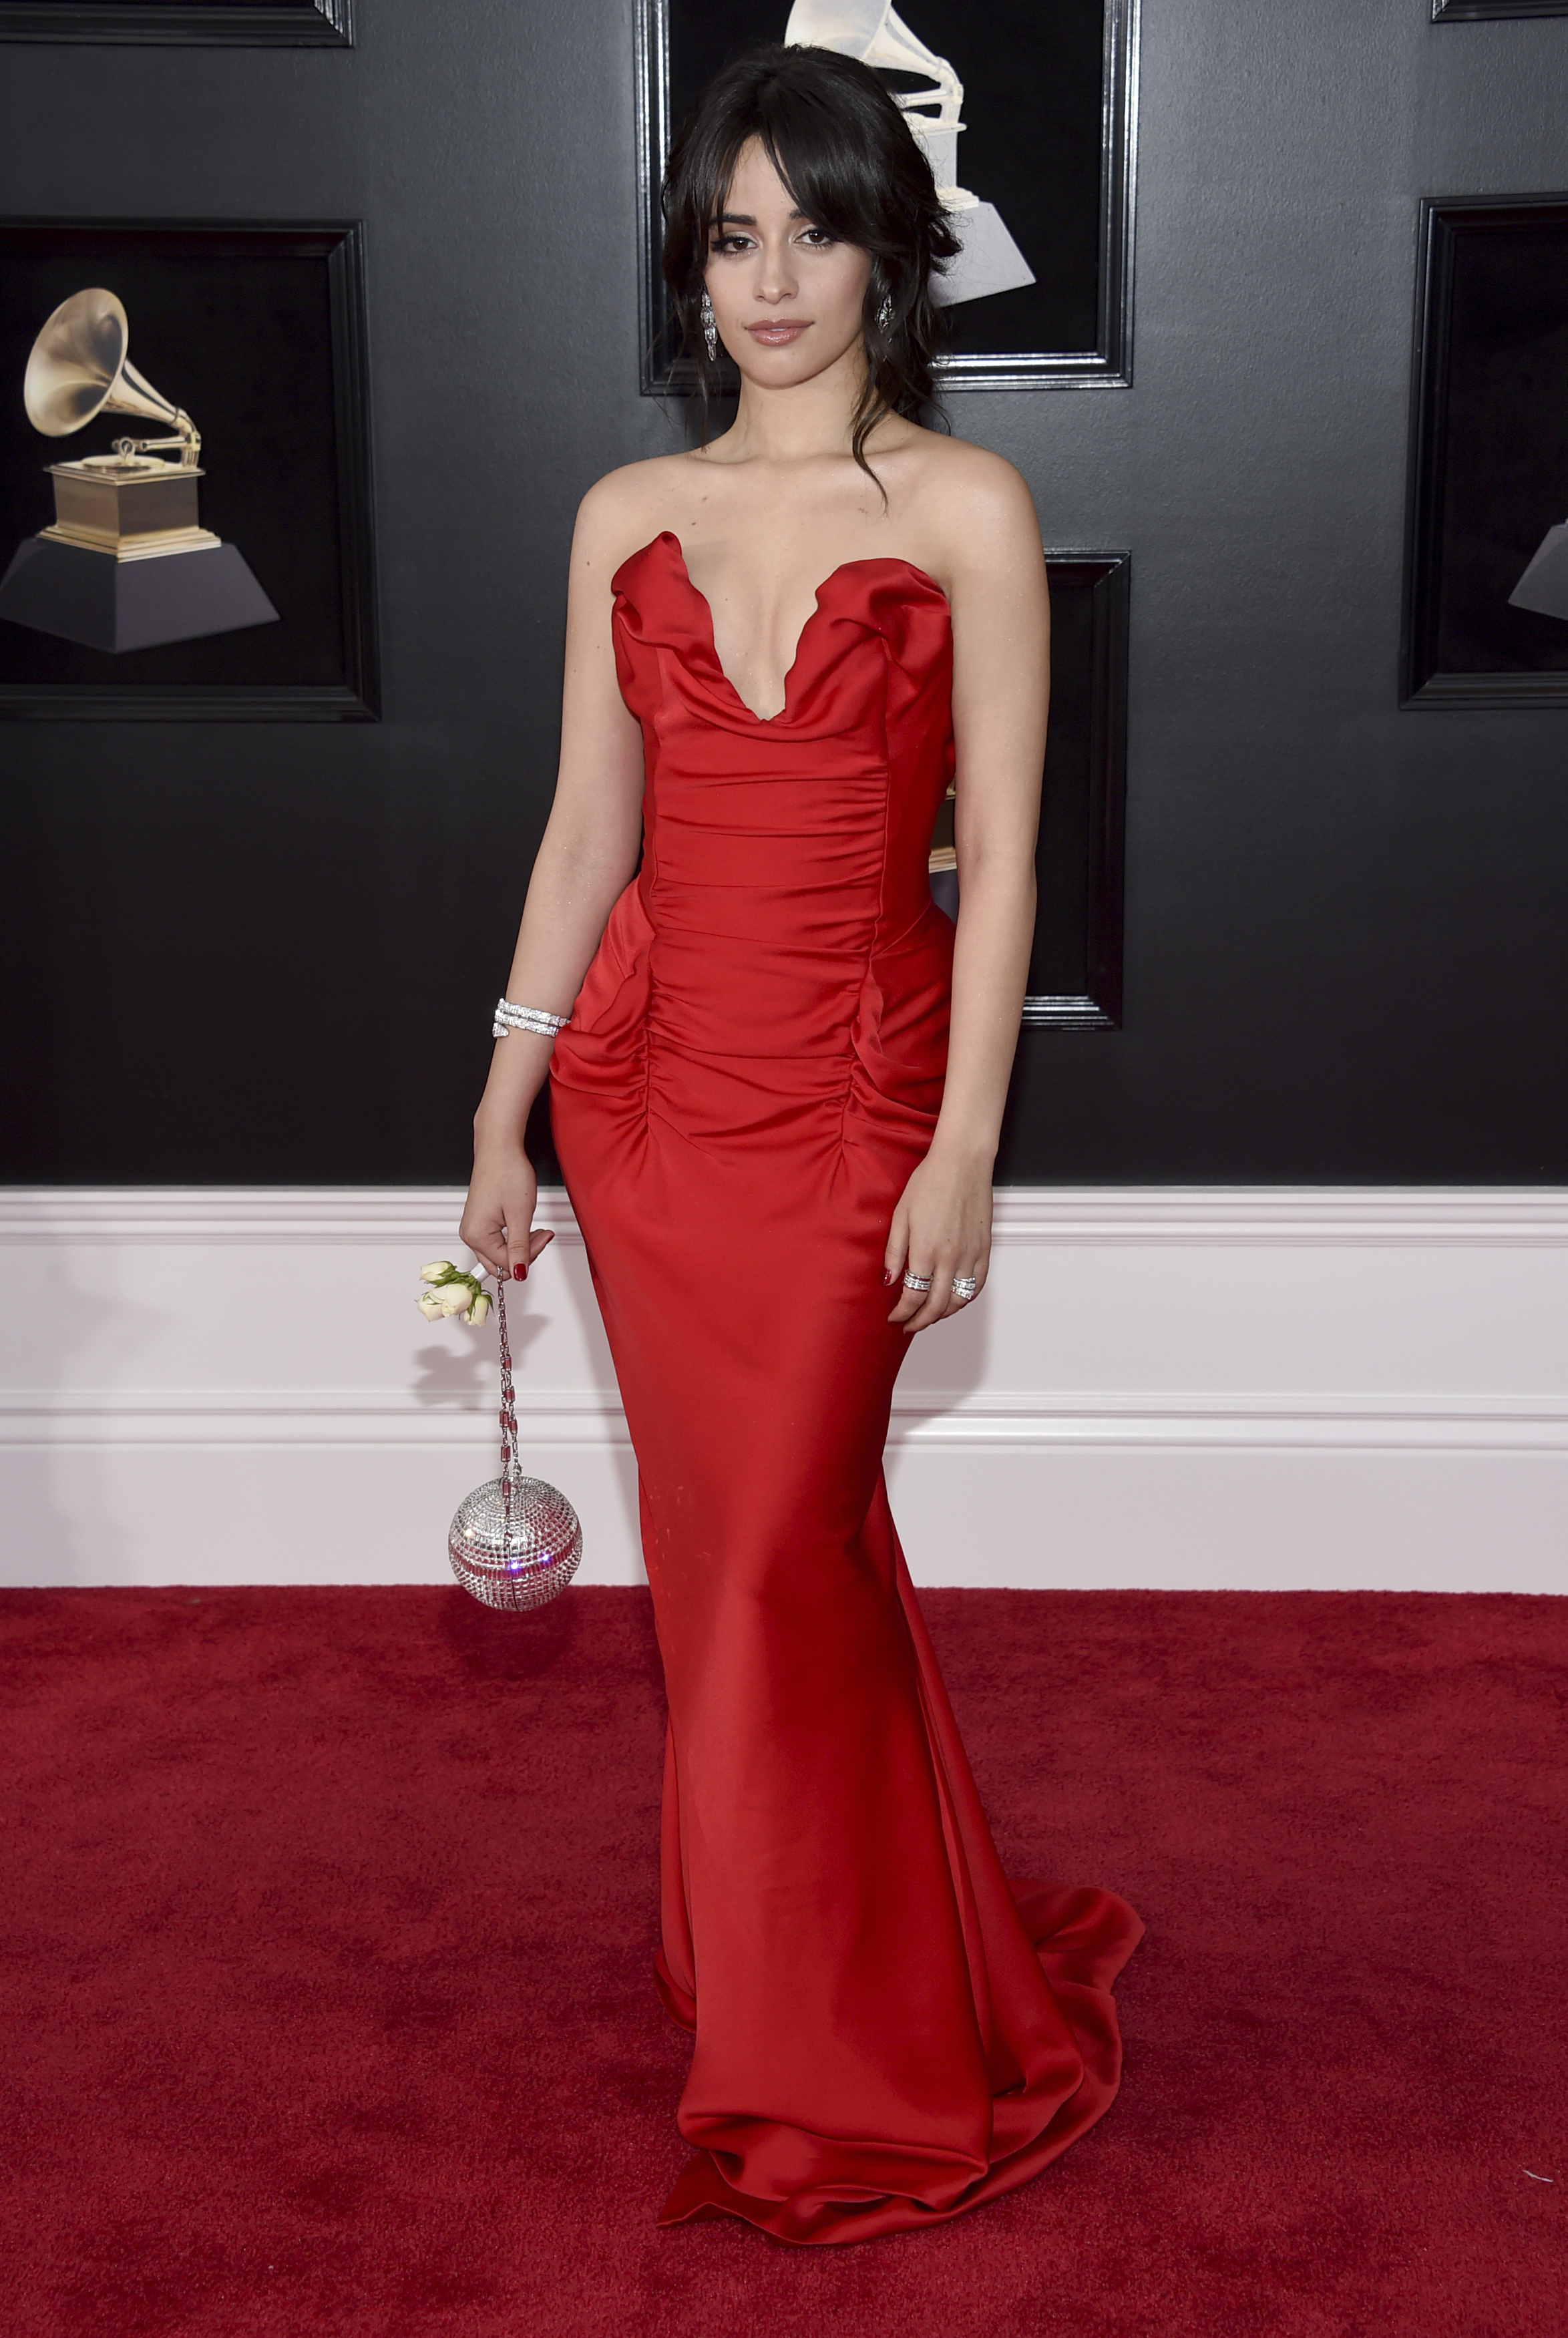 <div class='meta'><div class='origin-logo' data-origin='AP'></div><span class='caption-text' data-credit='Evan Agostini/Invision/AP'>Camila Cabello arrives at the 60th annual Grammy Awards at Madison Square Garden on Sunday, Jan. 28, 2018, in New York.</span></div>